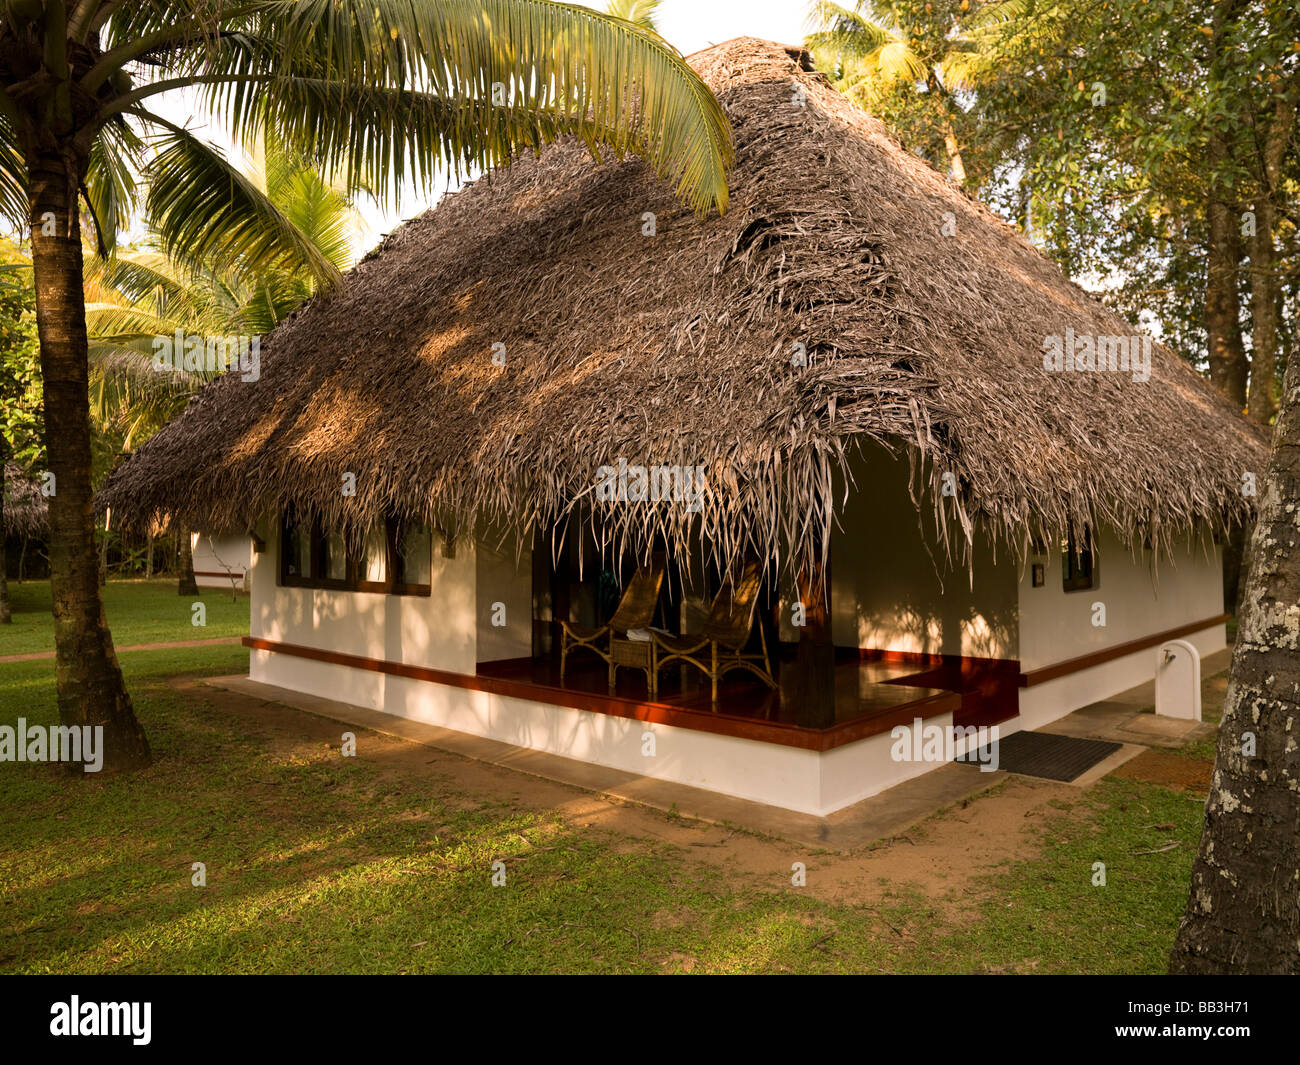 Bungalows And Swimming Pool Marari Beach Alleppey Kerala India Stock Photo 24050965 Alamy